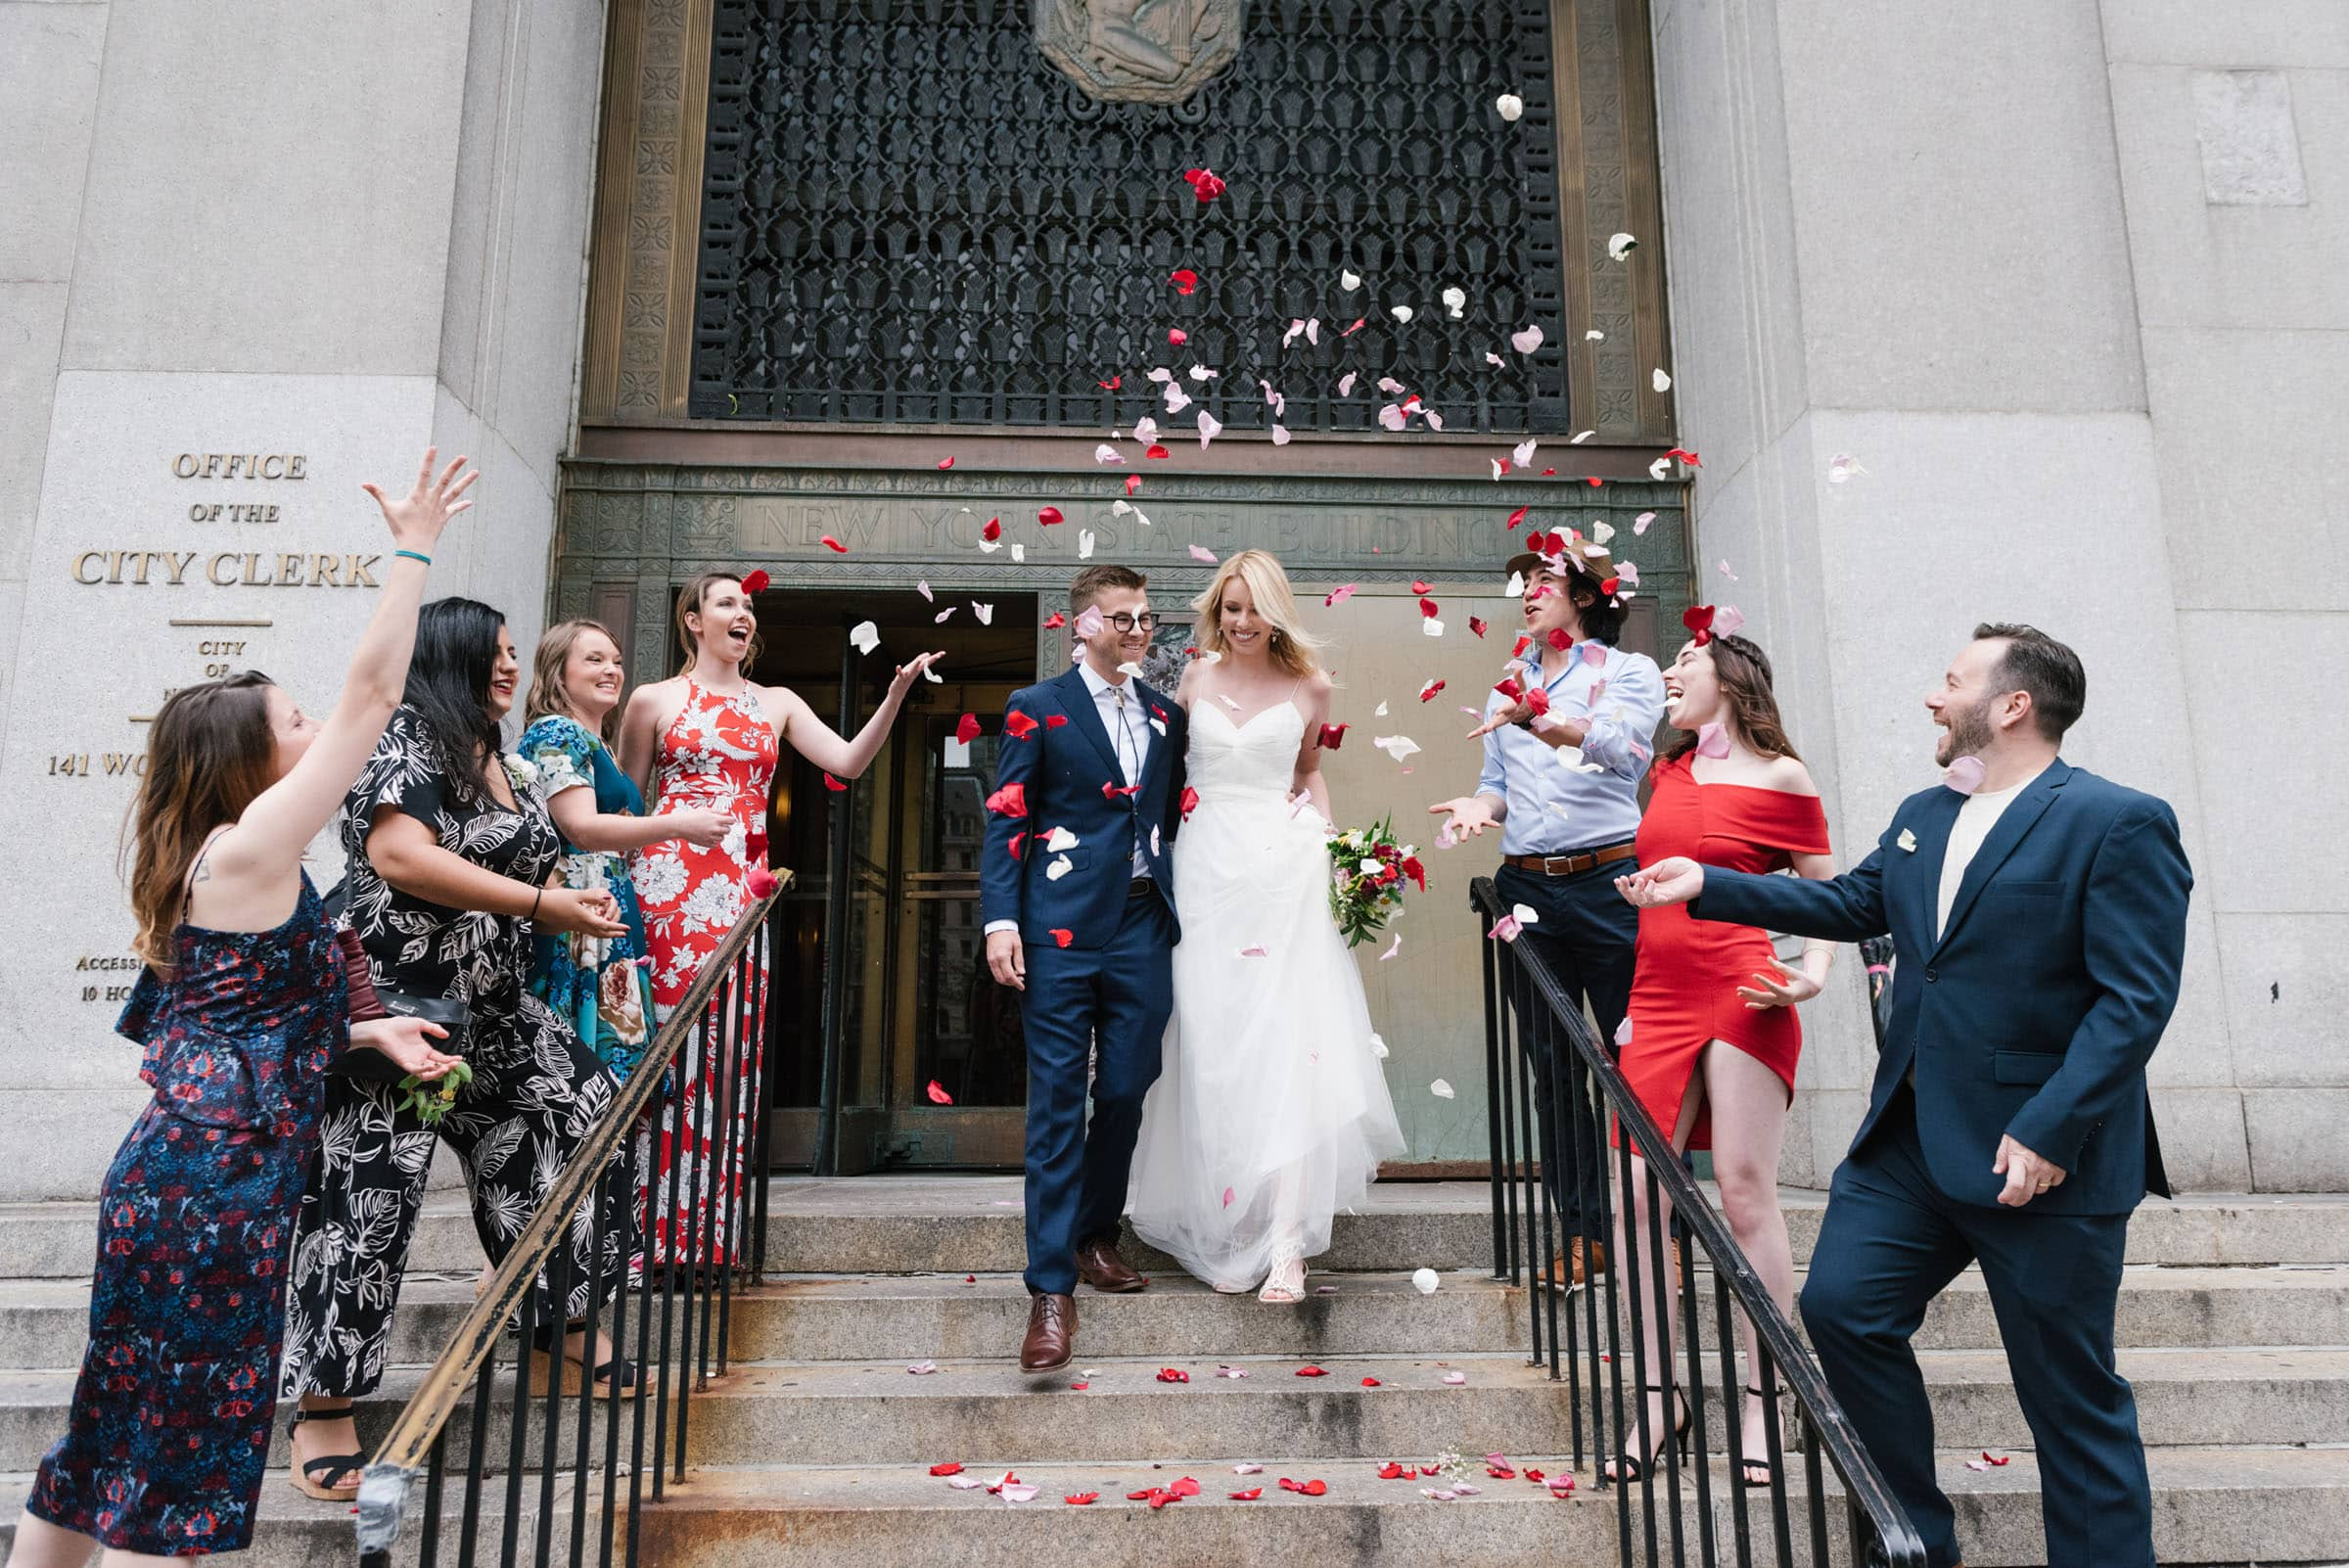 NYC Elopement Packages: NYC City Hall wedding